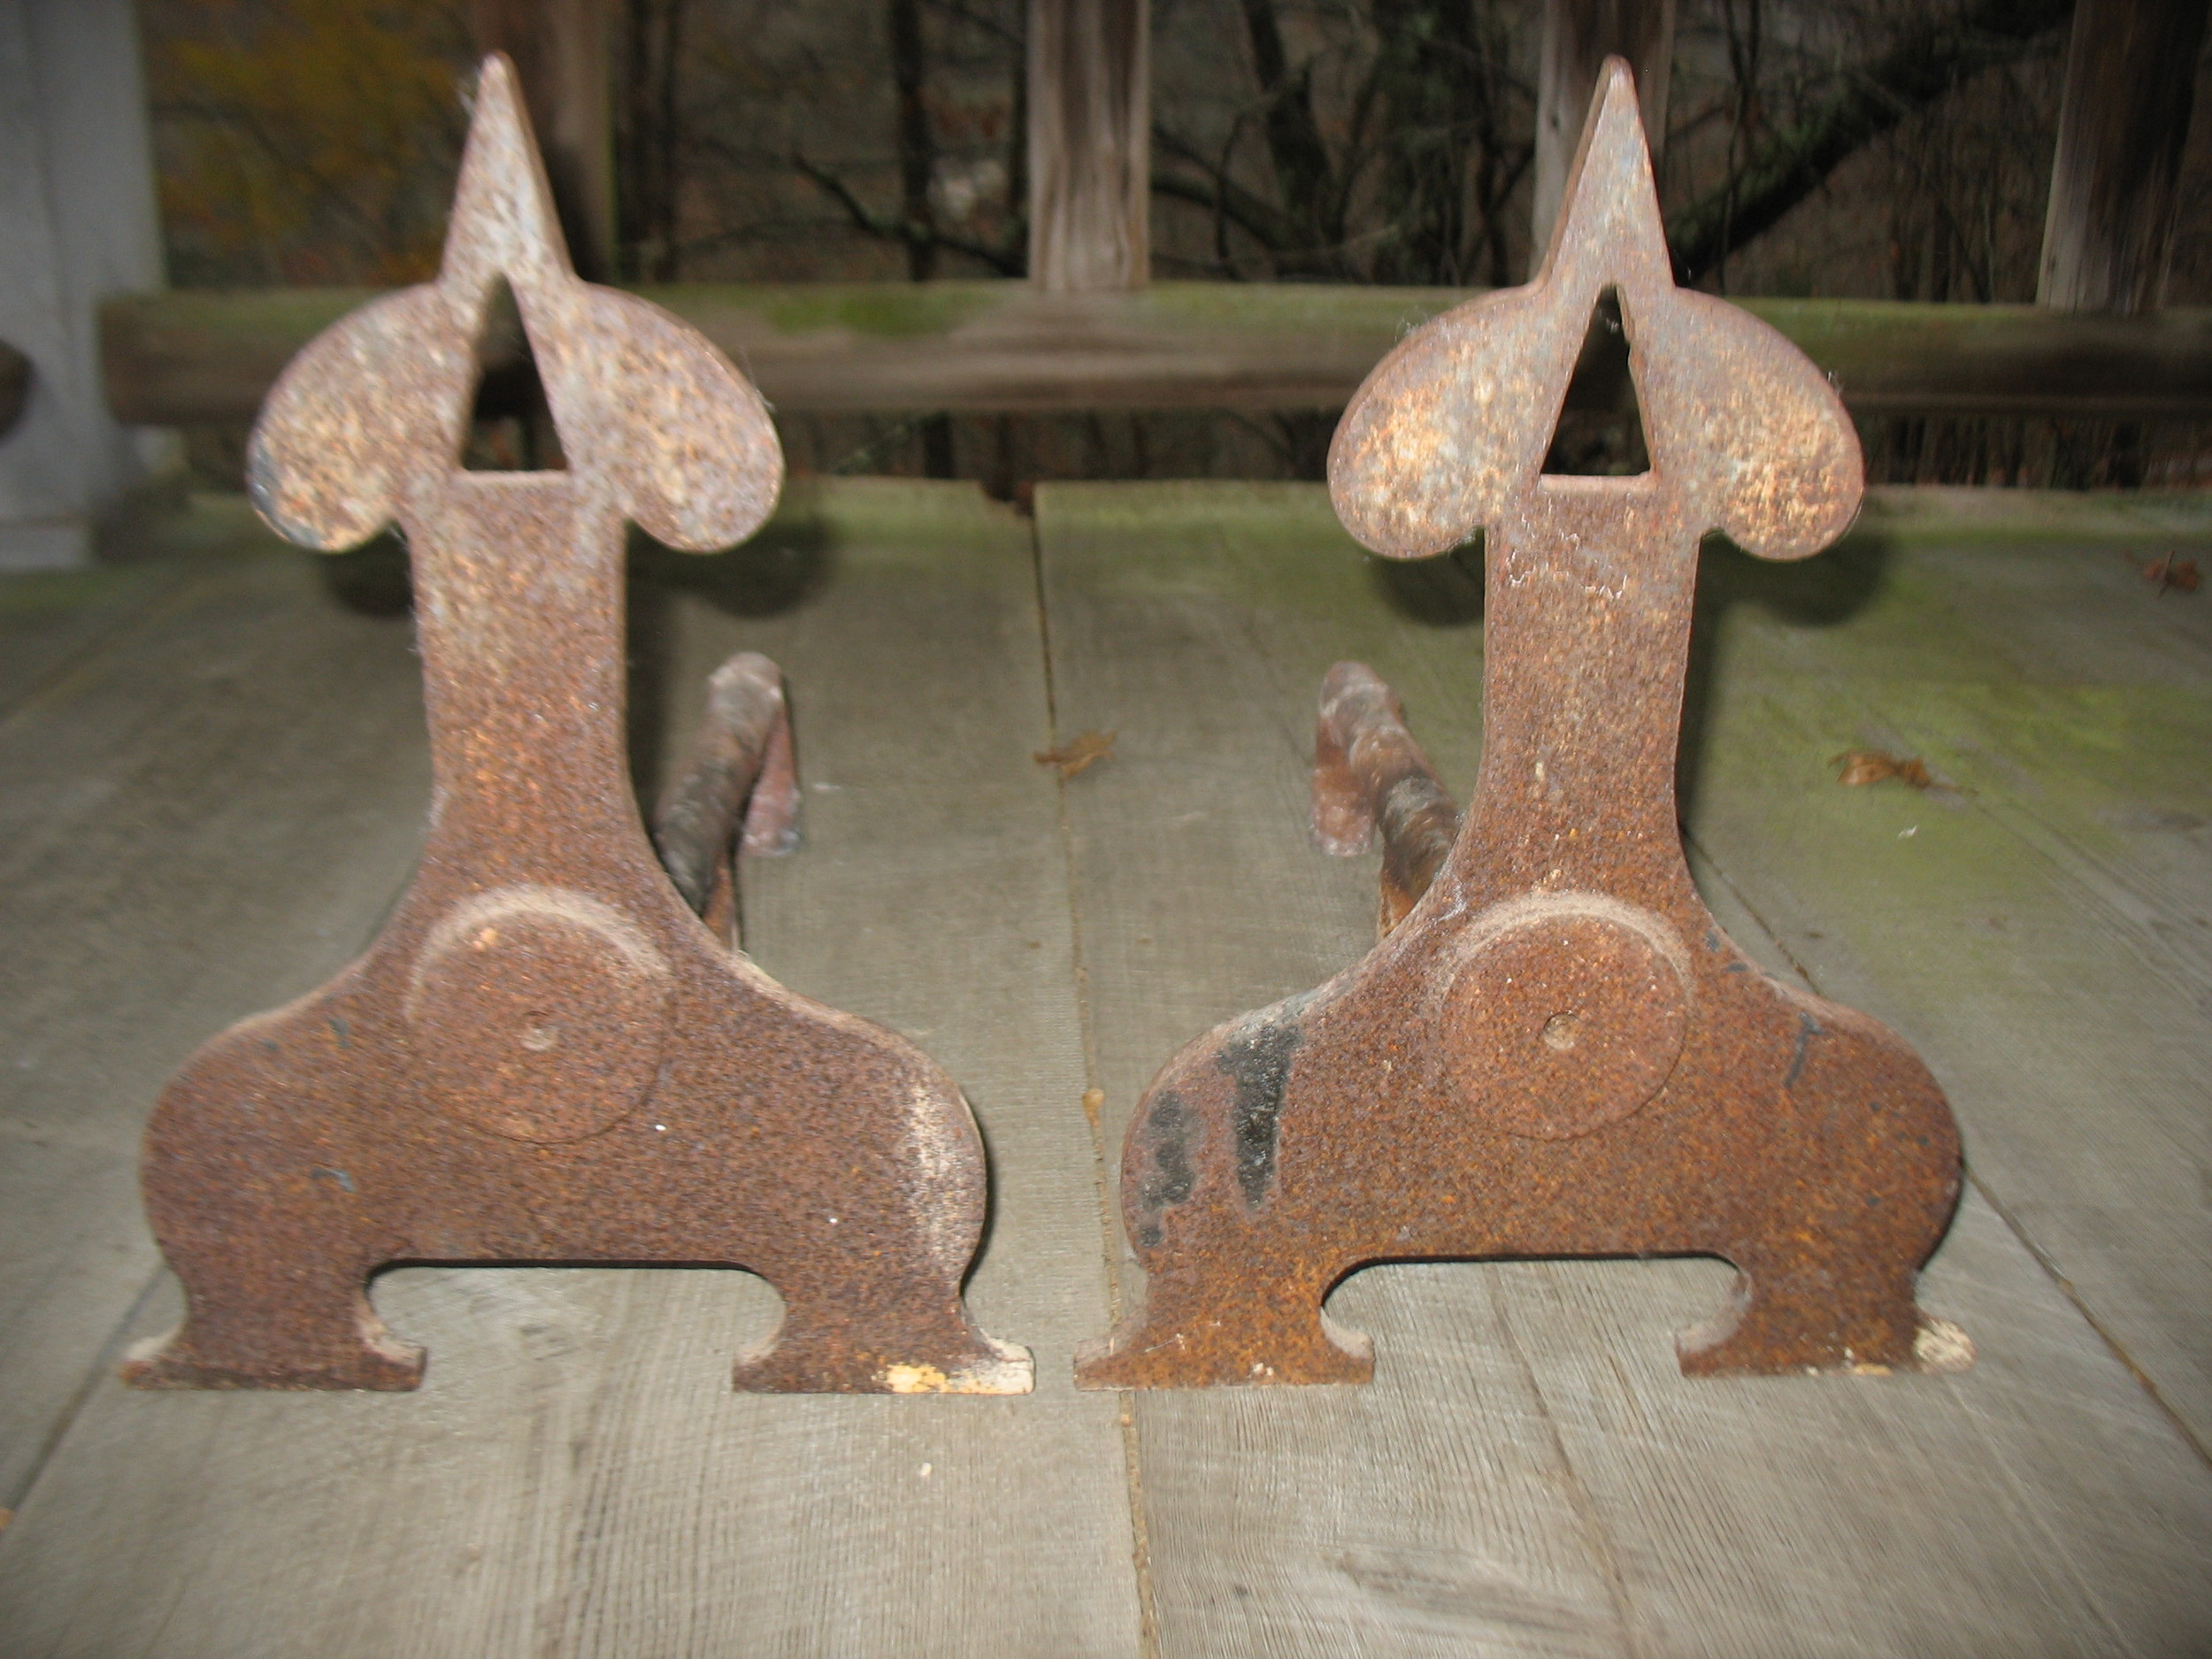 Theseare the very best for late 1700's French blacksmith made Andirons. Very heavy cast iron pair. They were shipped to us from France in 1946 after WWII. They measure 21 inches long X 18 inches tall X 12 inches wide each.    Price upon request